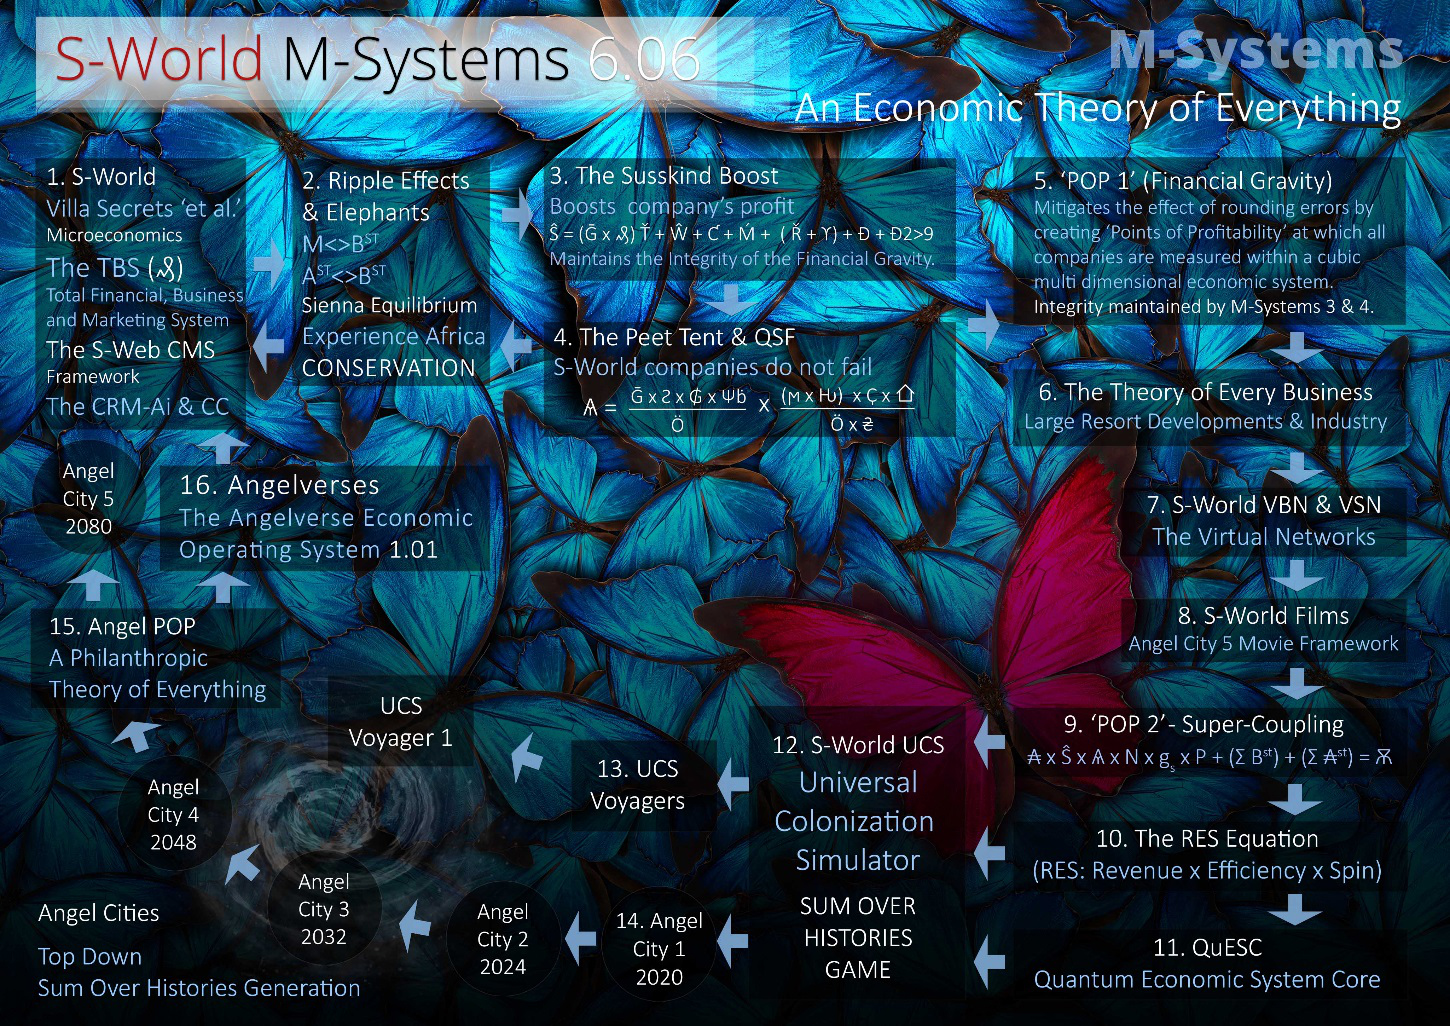 S-World M-Systems